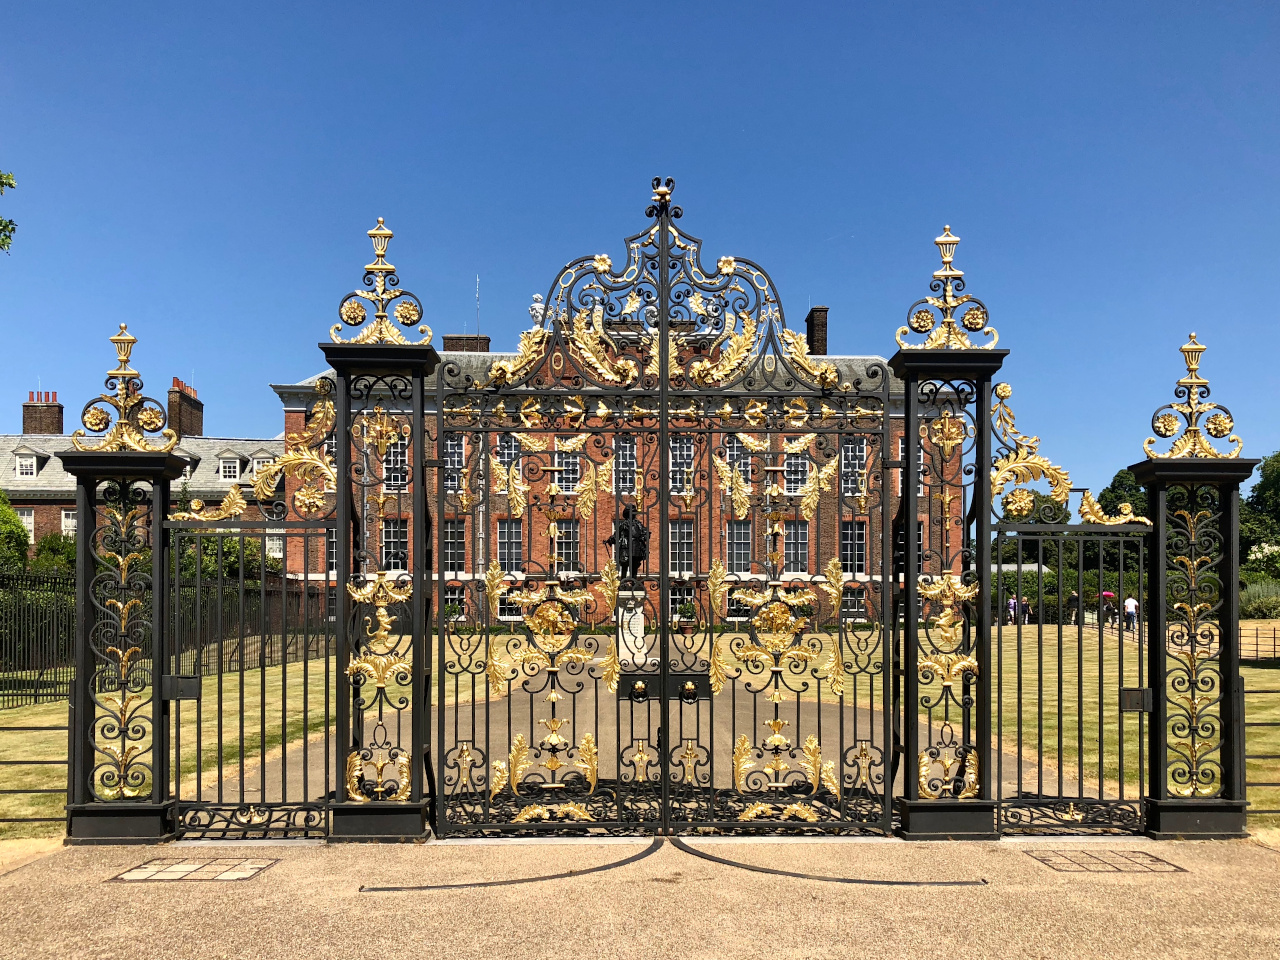 Kensington Palace is one of the top London attractions and you should include it on your walking London itinerary